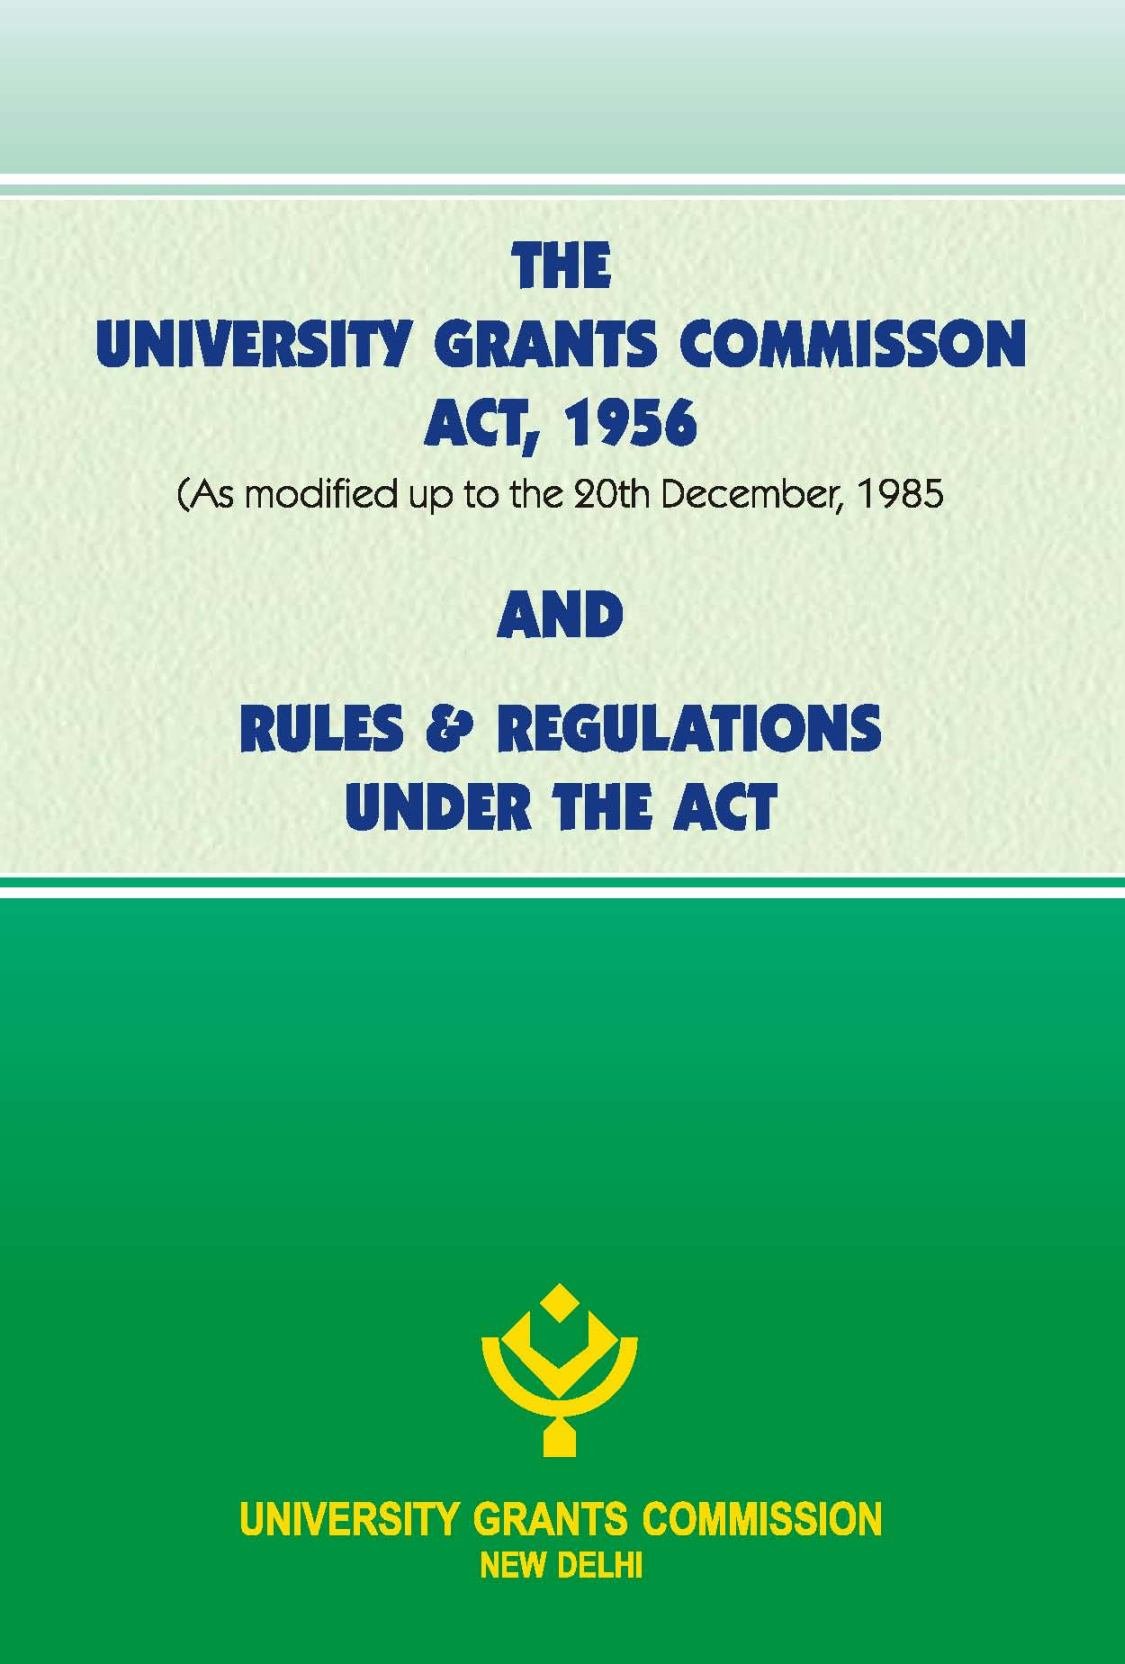 ugc act 1956 The university grants commission act, 1956 is an act of the parliament of india the act is sometimes referred to as the ugc act references.